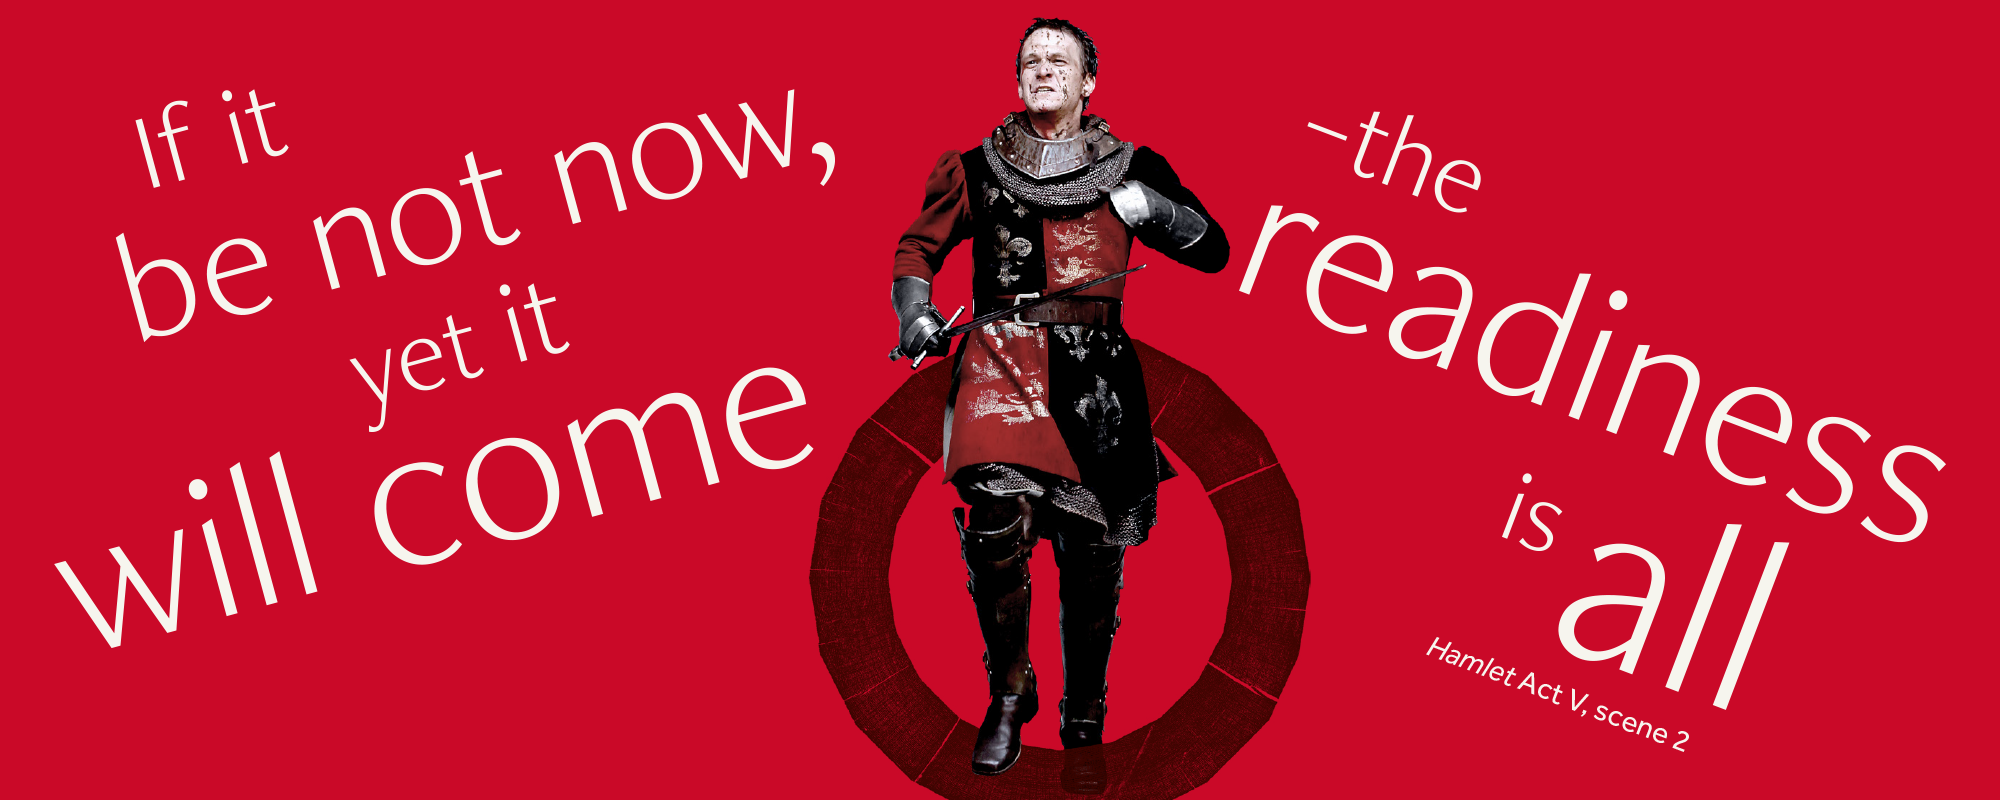 Quote says 'if it be not now, yet it will come- the readiness is all' from Hamlet, an actor in armour is running in the middle of the quote